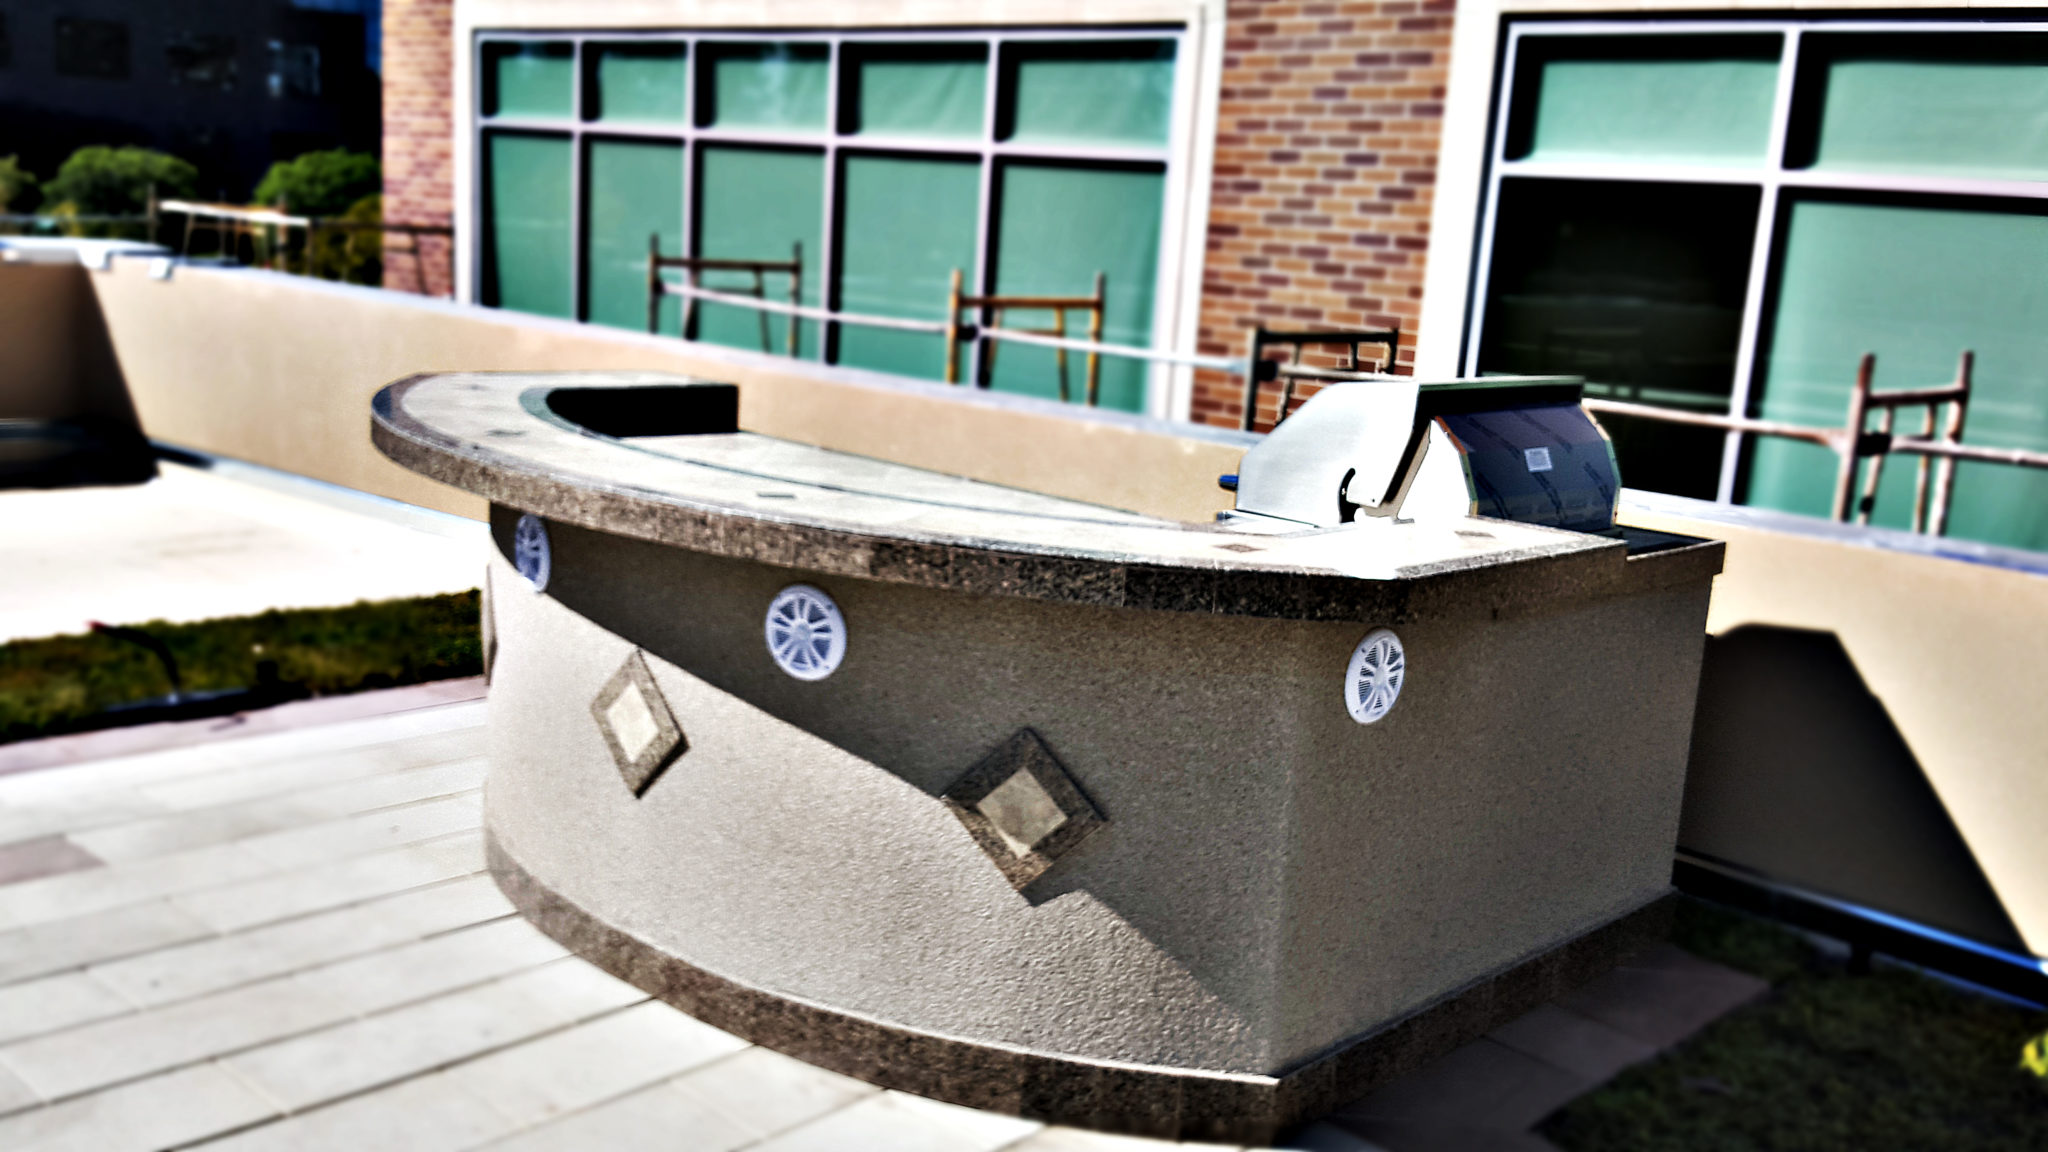 Extreme Backyard Designs built in bbq grills At Extreme Backyard Designs We Have Over 30 Years Of Experience Building Designing And Building Custom Bbq Islands We Have Built Bbq Islands For